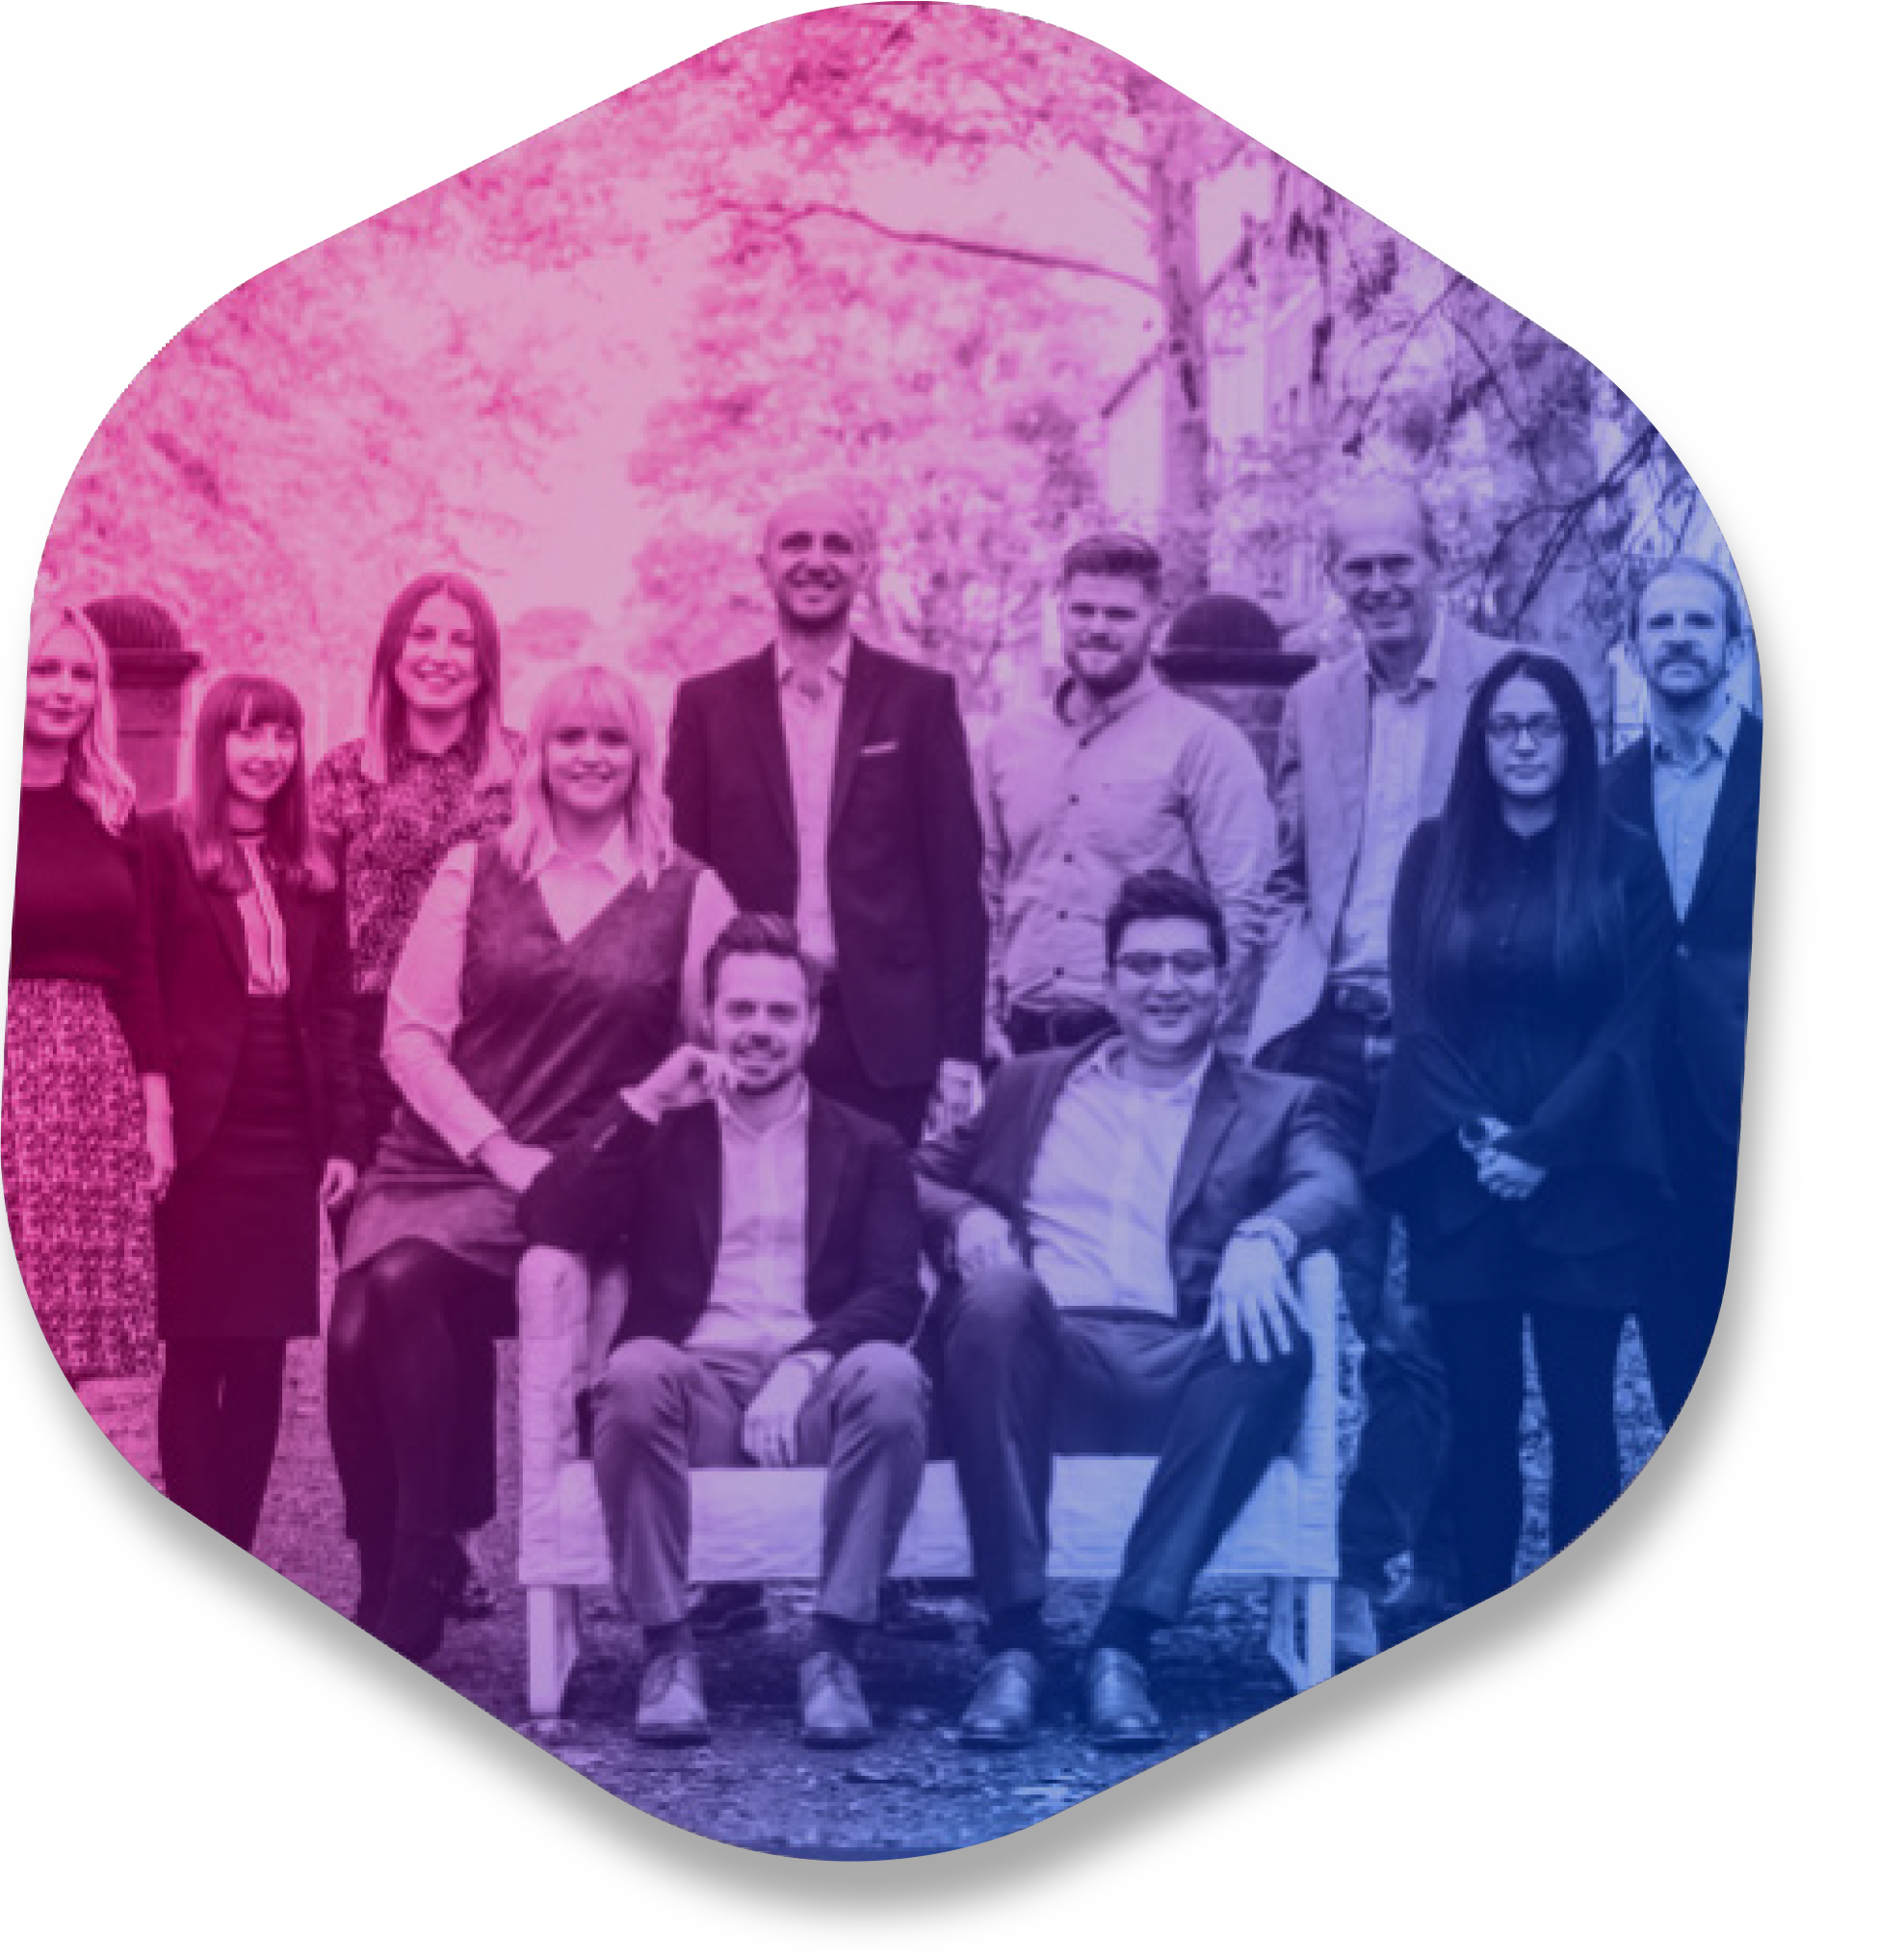 Iron market team in hexagon shaped image